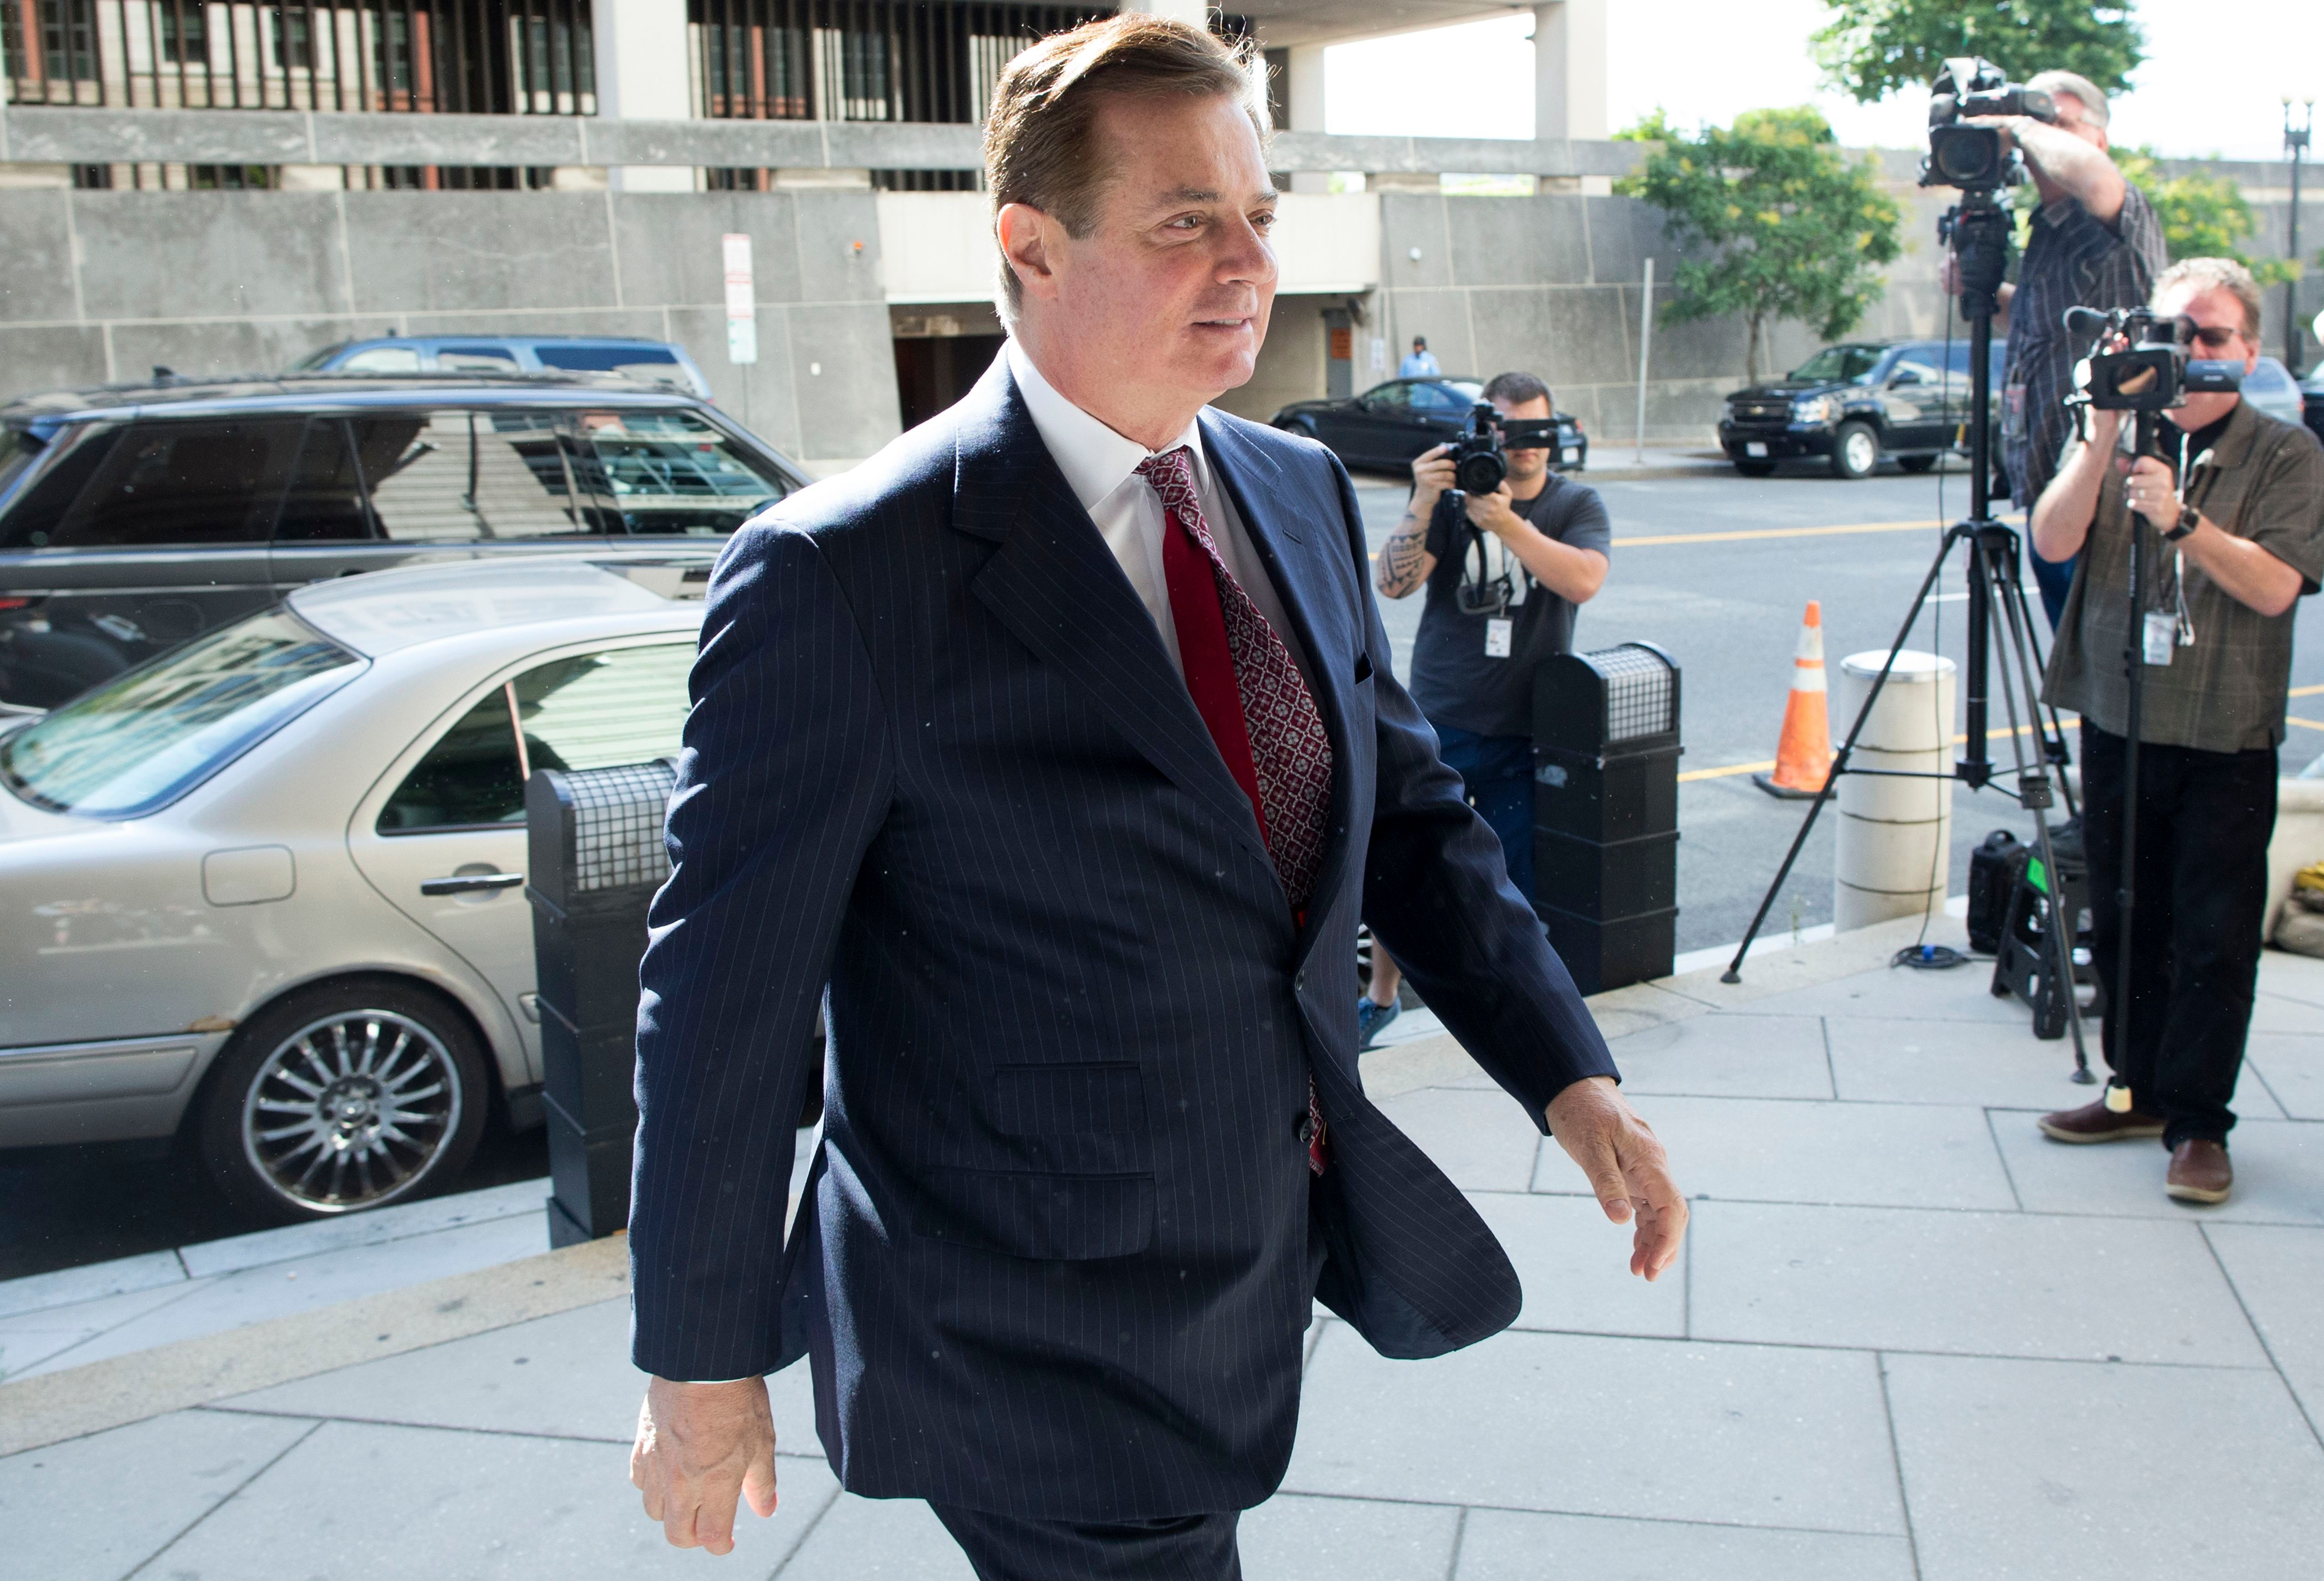 Former Trump campaign chairman Paul Manafort arrives at the Federal Courthouse in Washington, DC, USA, 15 June 2018. Manafort is accused of witness tampering and the office of US Special Counsel Robert Mueller has asked a federal judge to revoke his bail before a trial this autumn.                     Former Trump Campaign Manager Paul Manafort, Washington, USA - 15 Jun 2018